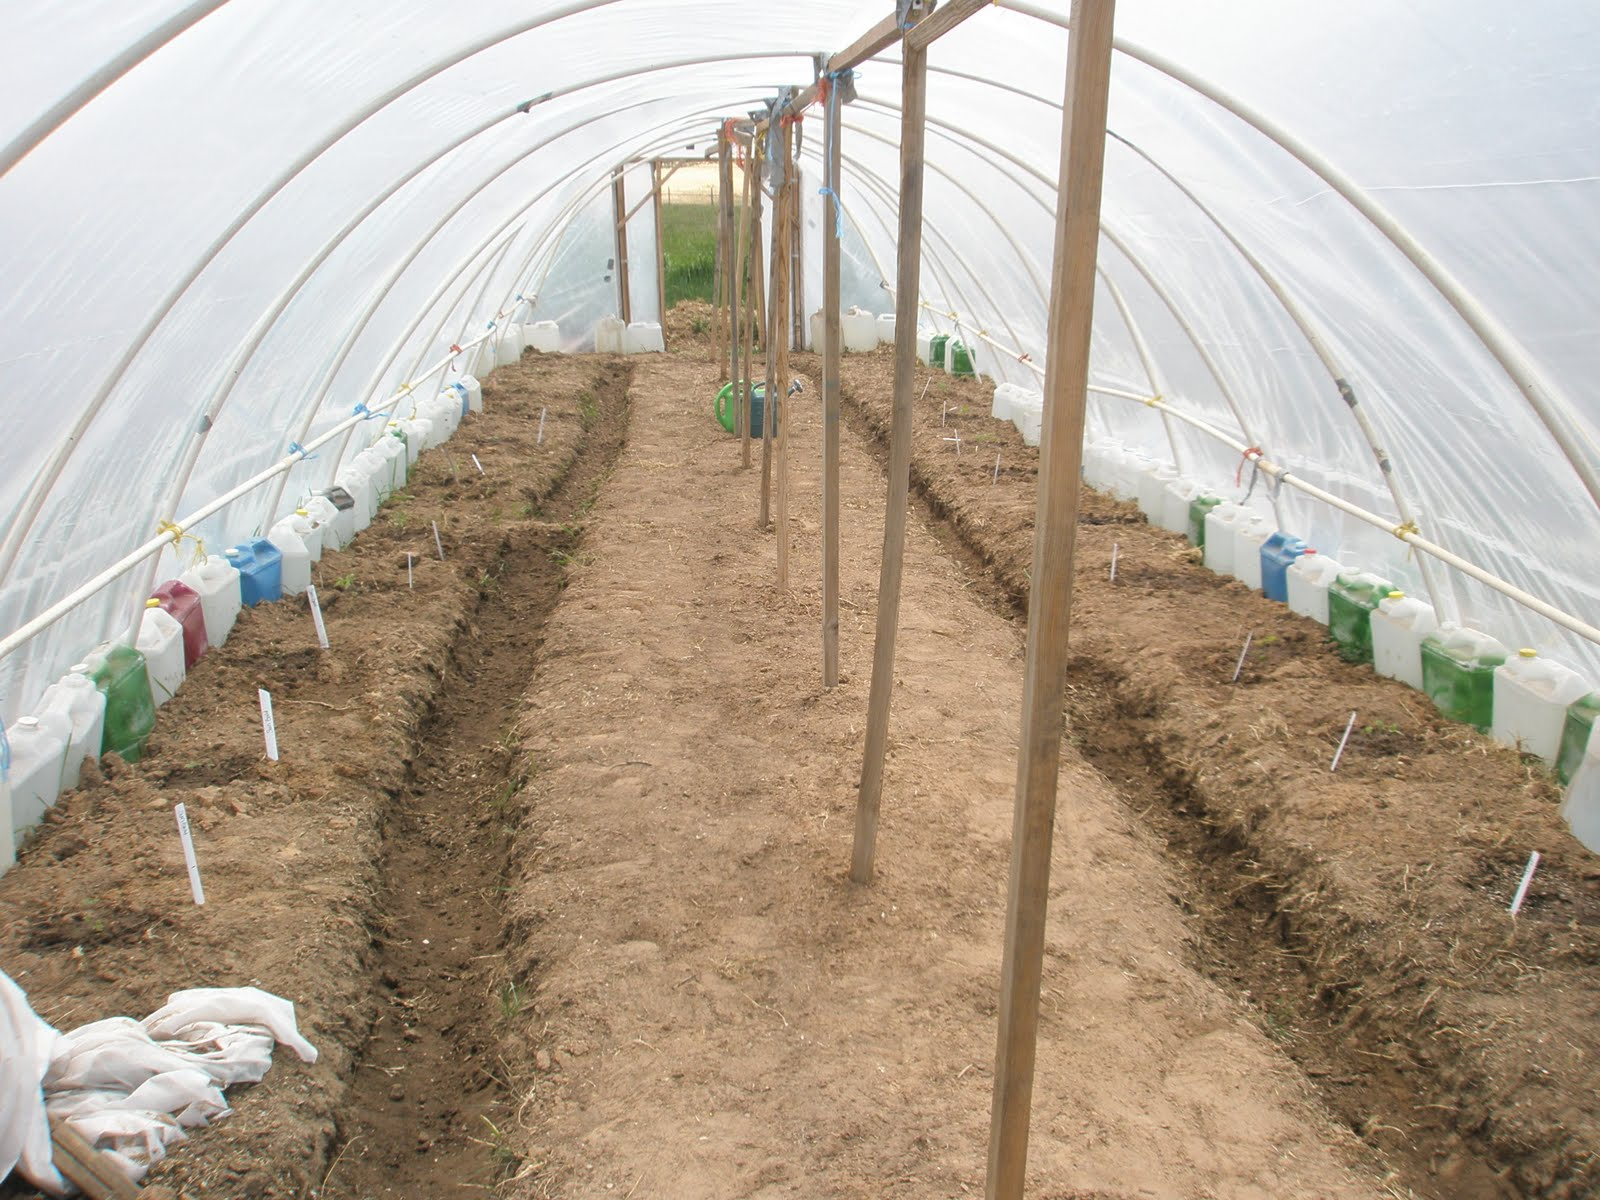 Captivating Greenhouse: Green Houses Are Another Means Of Combating Cold Weather. The  Farm Built A Straw Bale Green House. They Used Reclaimed Wood To Make Them  Frame, ...